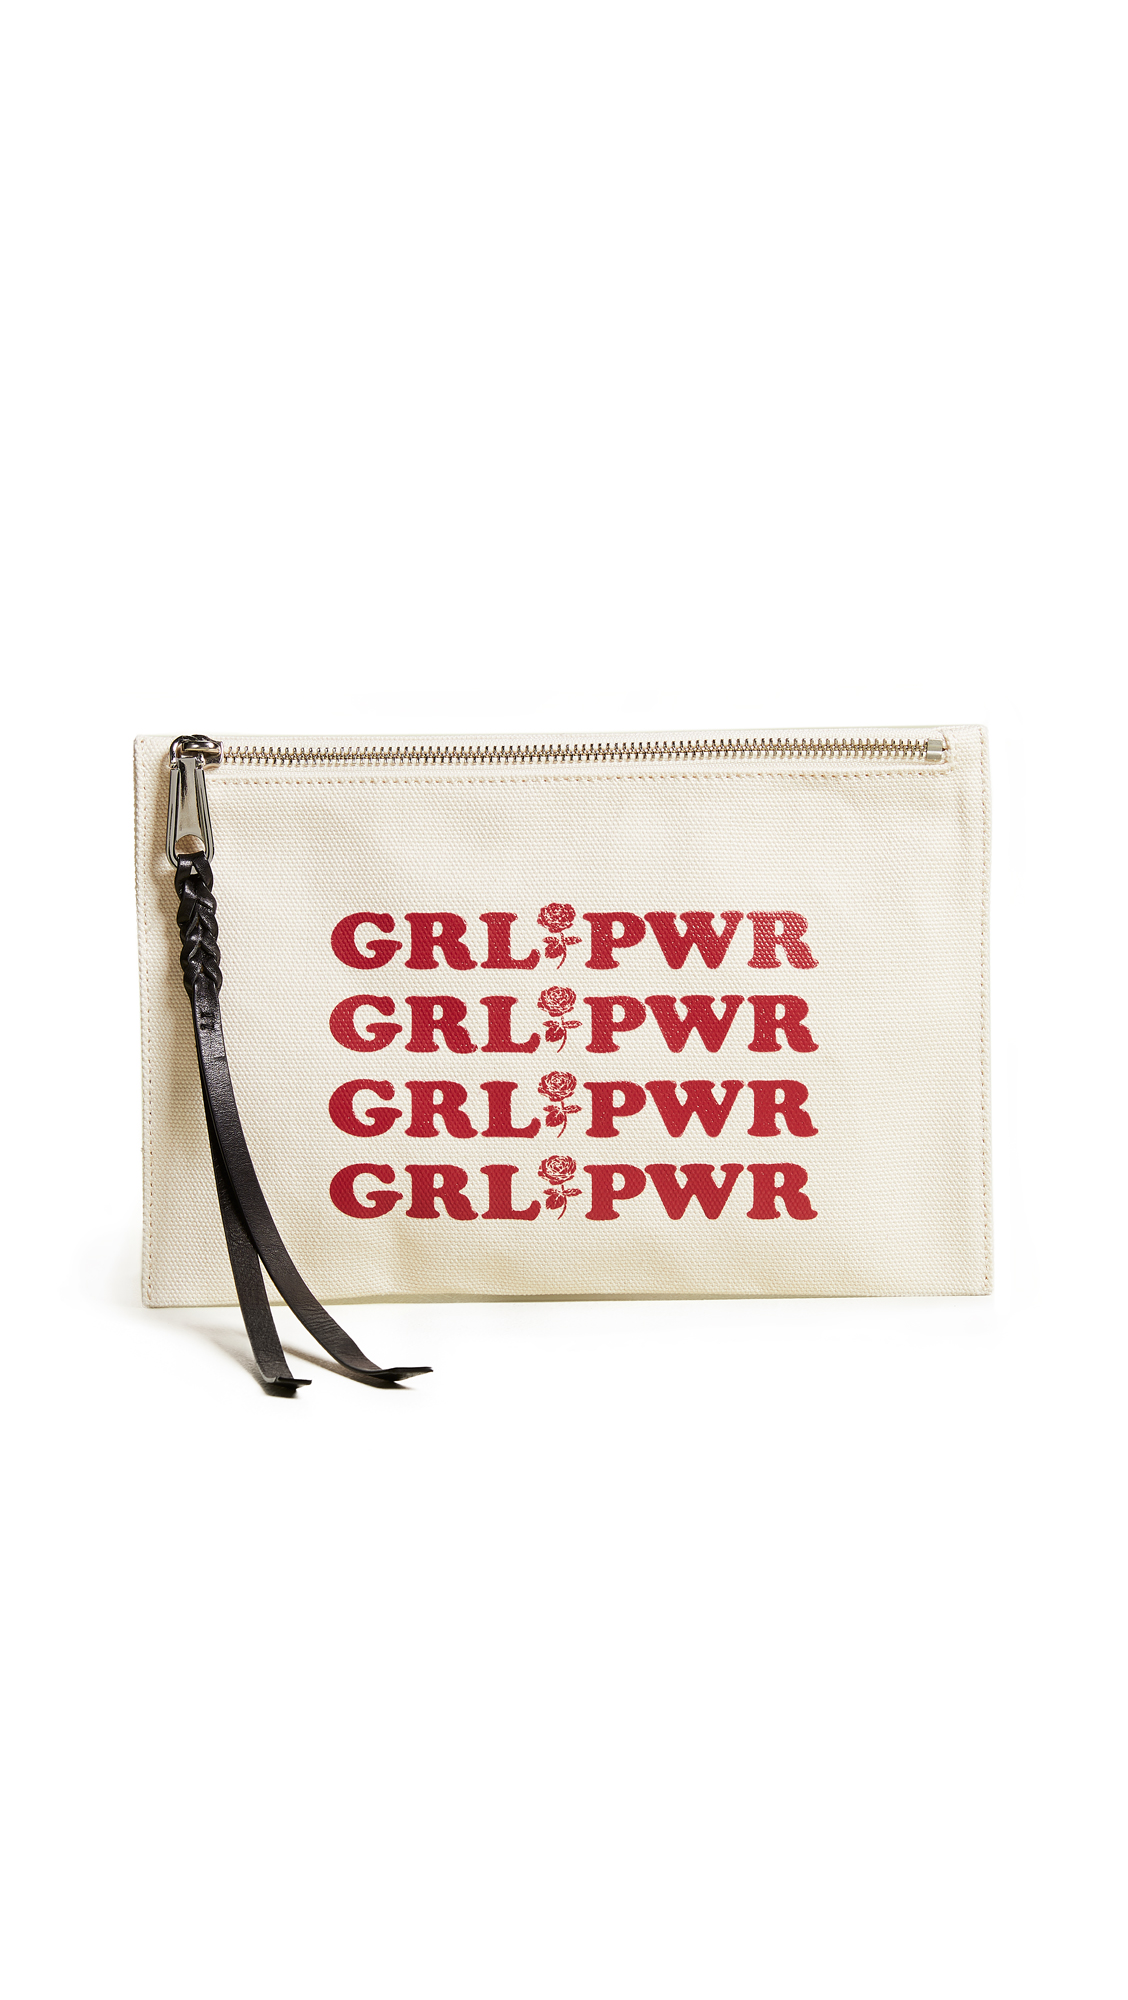 Girl Power Medium Zip Pouch - White, Cream